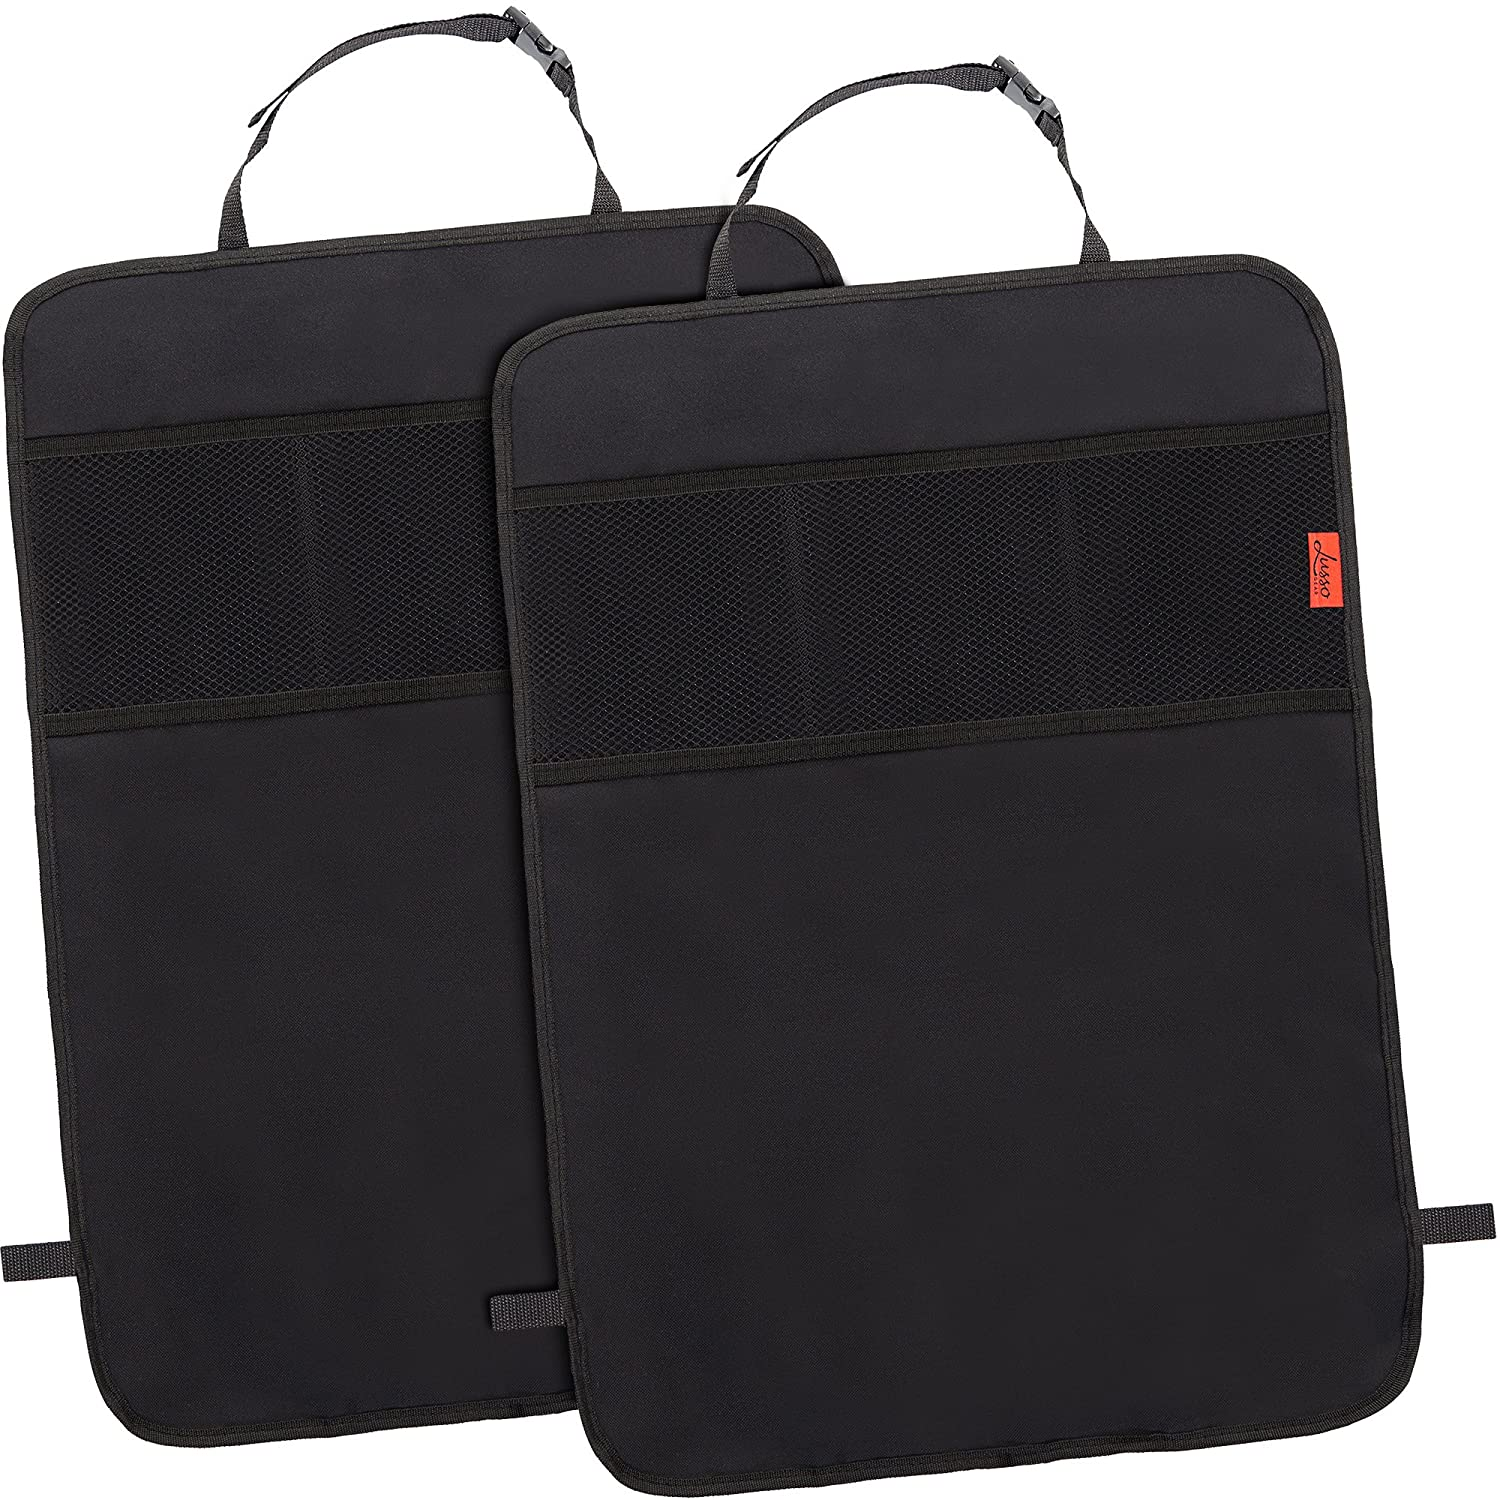 Seat Back Protectors (2 pack) - Car Kick Mats with Odor Free, Premium Waterproof Fabric, Reinforced Corners to Prevent Sag, and 3 Mesh Pockets for Great Storage Lusso Gear